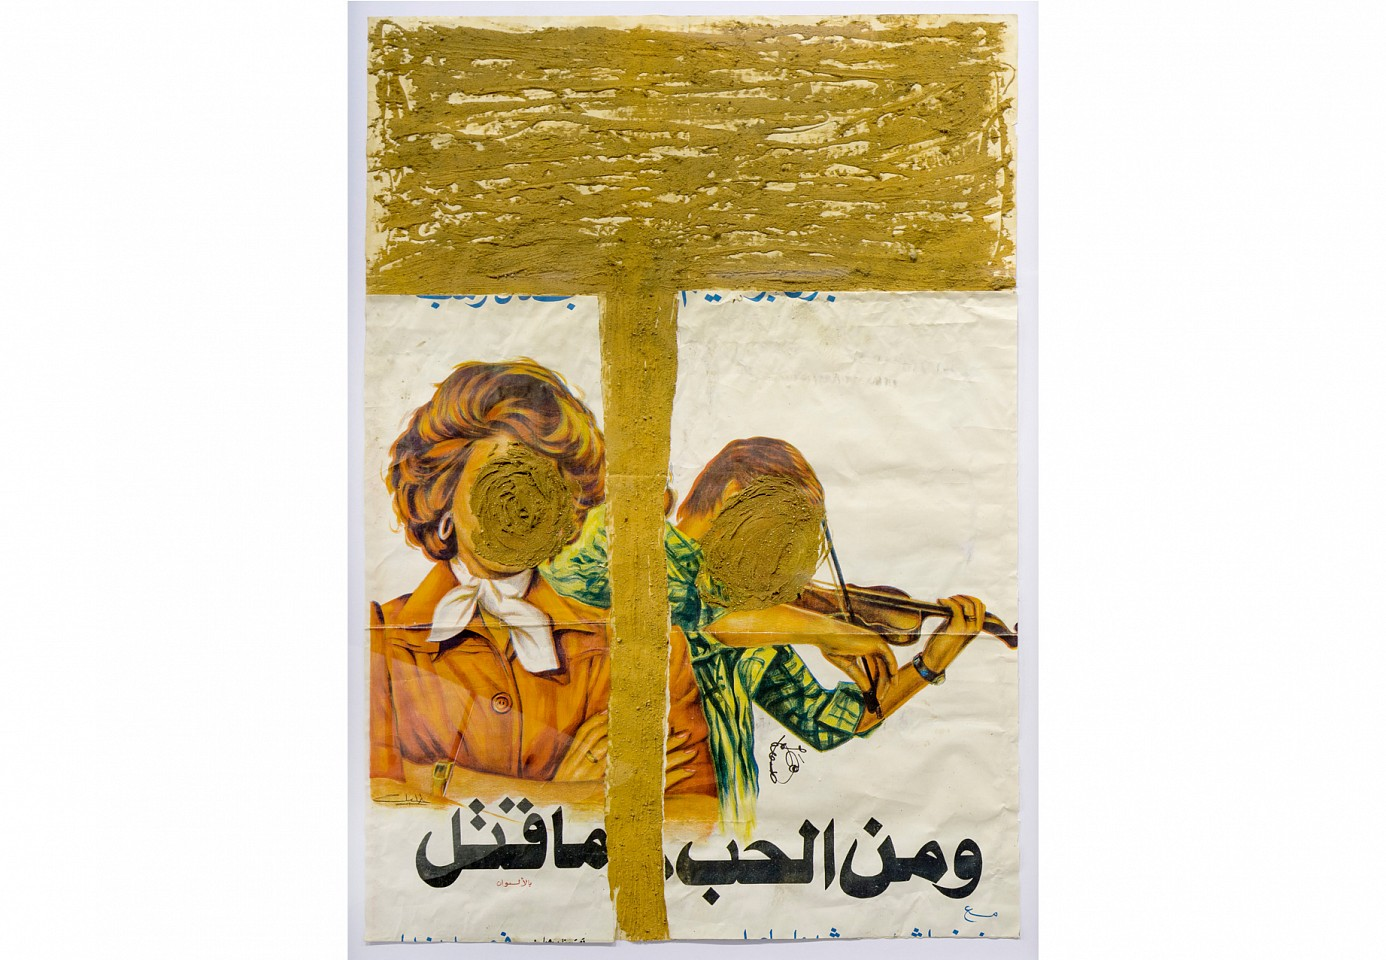 "<p><span class=""viewer-caption-artist"">Ayman Yossri Daydban</span></p> <p><span class=""viewer-caption-title""><i>Love Kills from My Father Over The Tree series</i></span>, <span class=""viewer-caption-year"">2016</span></p> <p><span class=""viewer-caption-media"">Silicone on vintage poster</span></p> <p><span class=""viewer-caption-dimensions"">100 x 70 cm (39 5/16 x 27 1/2 in.)</span></p> <p><span class=""viewer-caption-inventory"">AYD0575</span></p> <p><span class=""viewer-caption-aux""></span></p>"